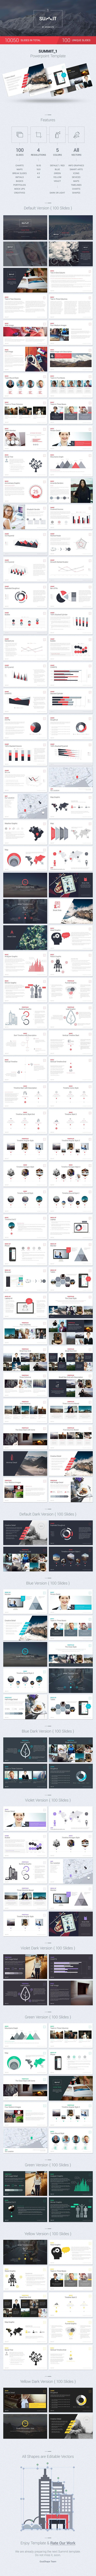 Summit 1 PowerPoint Template (PowerPoint Templates) 01 Summit Cover